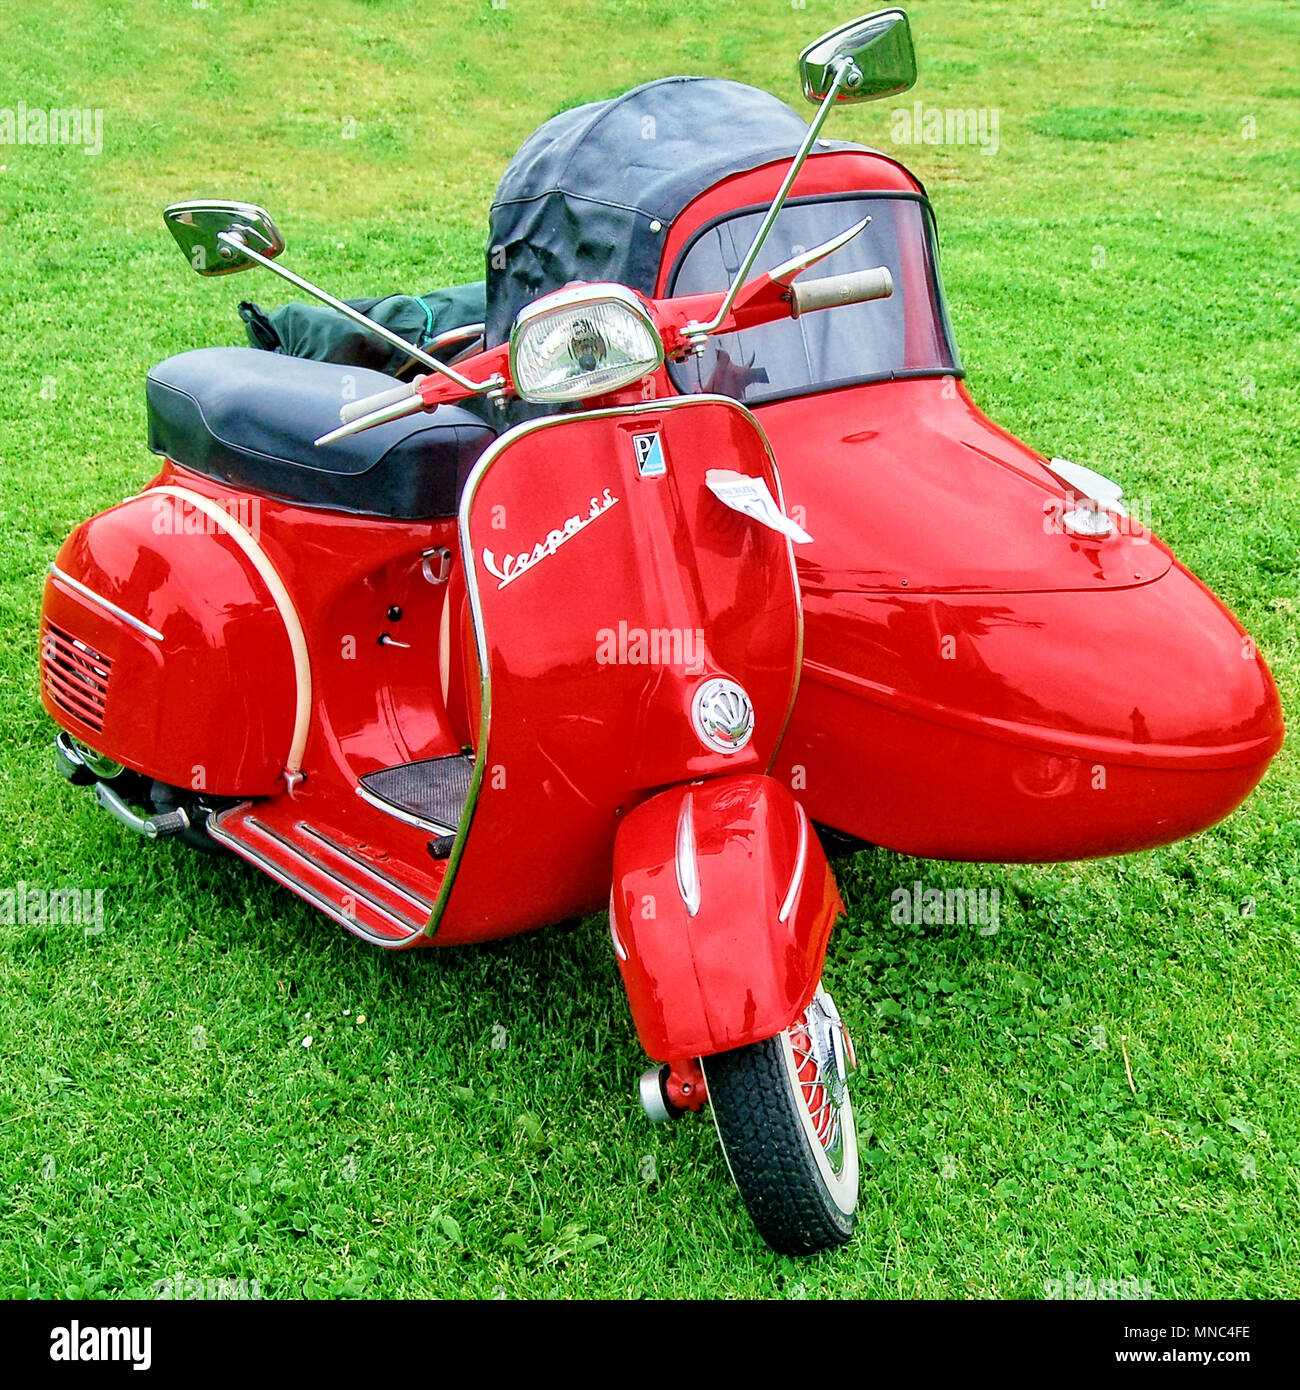 Vespa SS Motor Scooter and Matching Sidecar - Stock Image